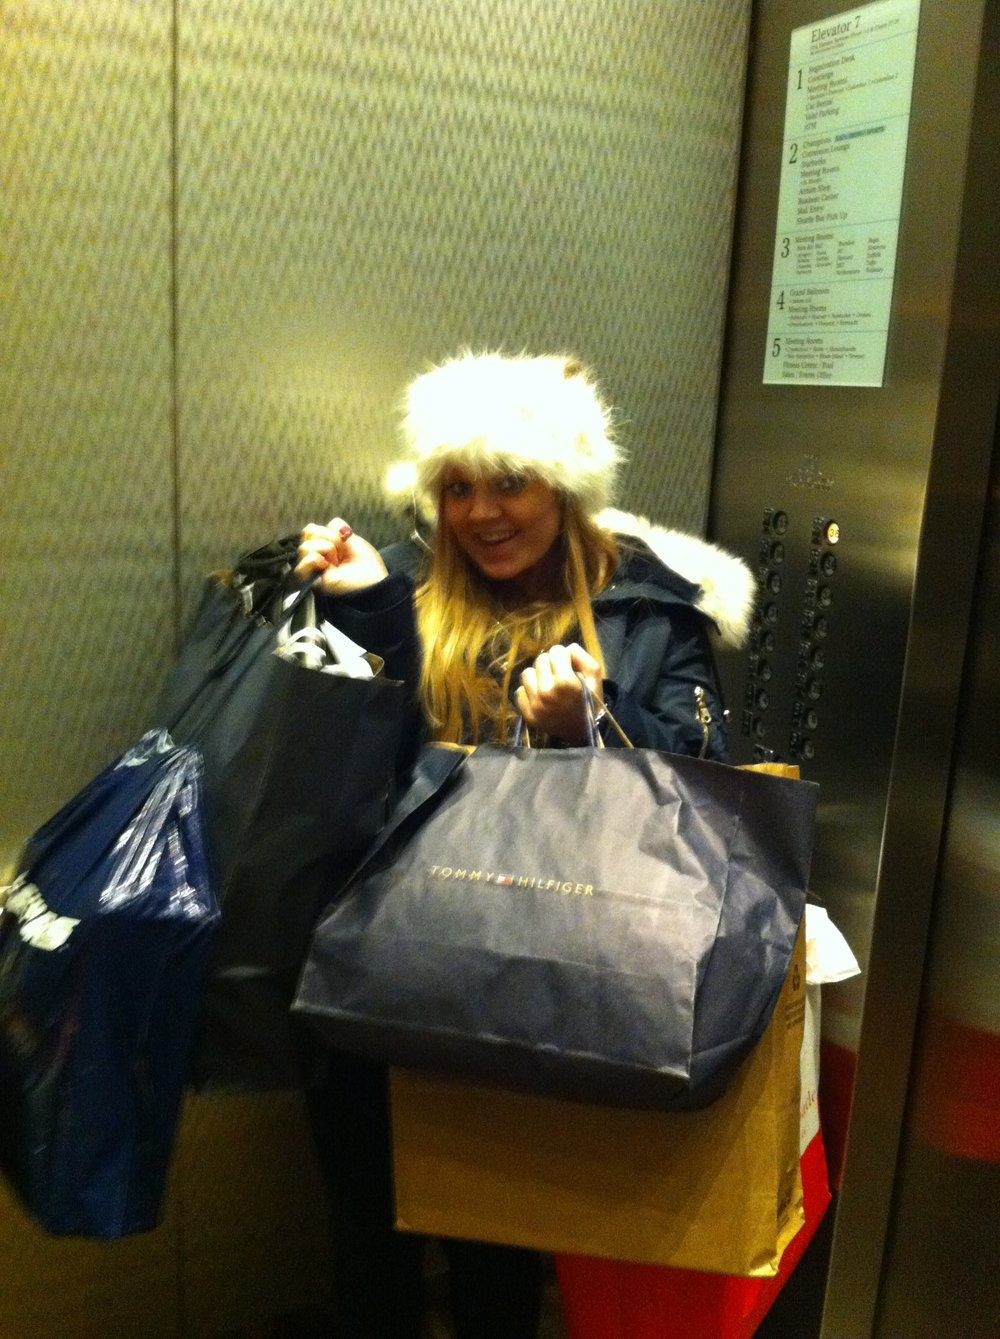 Black_Friday_Sales_Boston_Outlet_Mall_Tommy_Hilfiger_Elle_Blonde_Luxury_Lifestyle_Blog.JPG